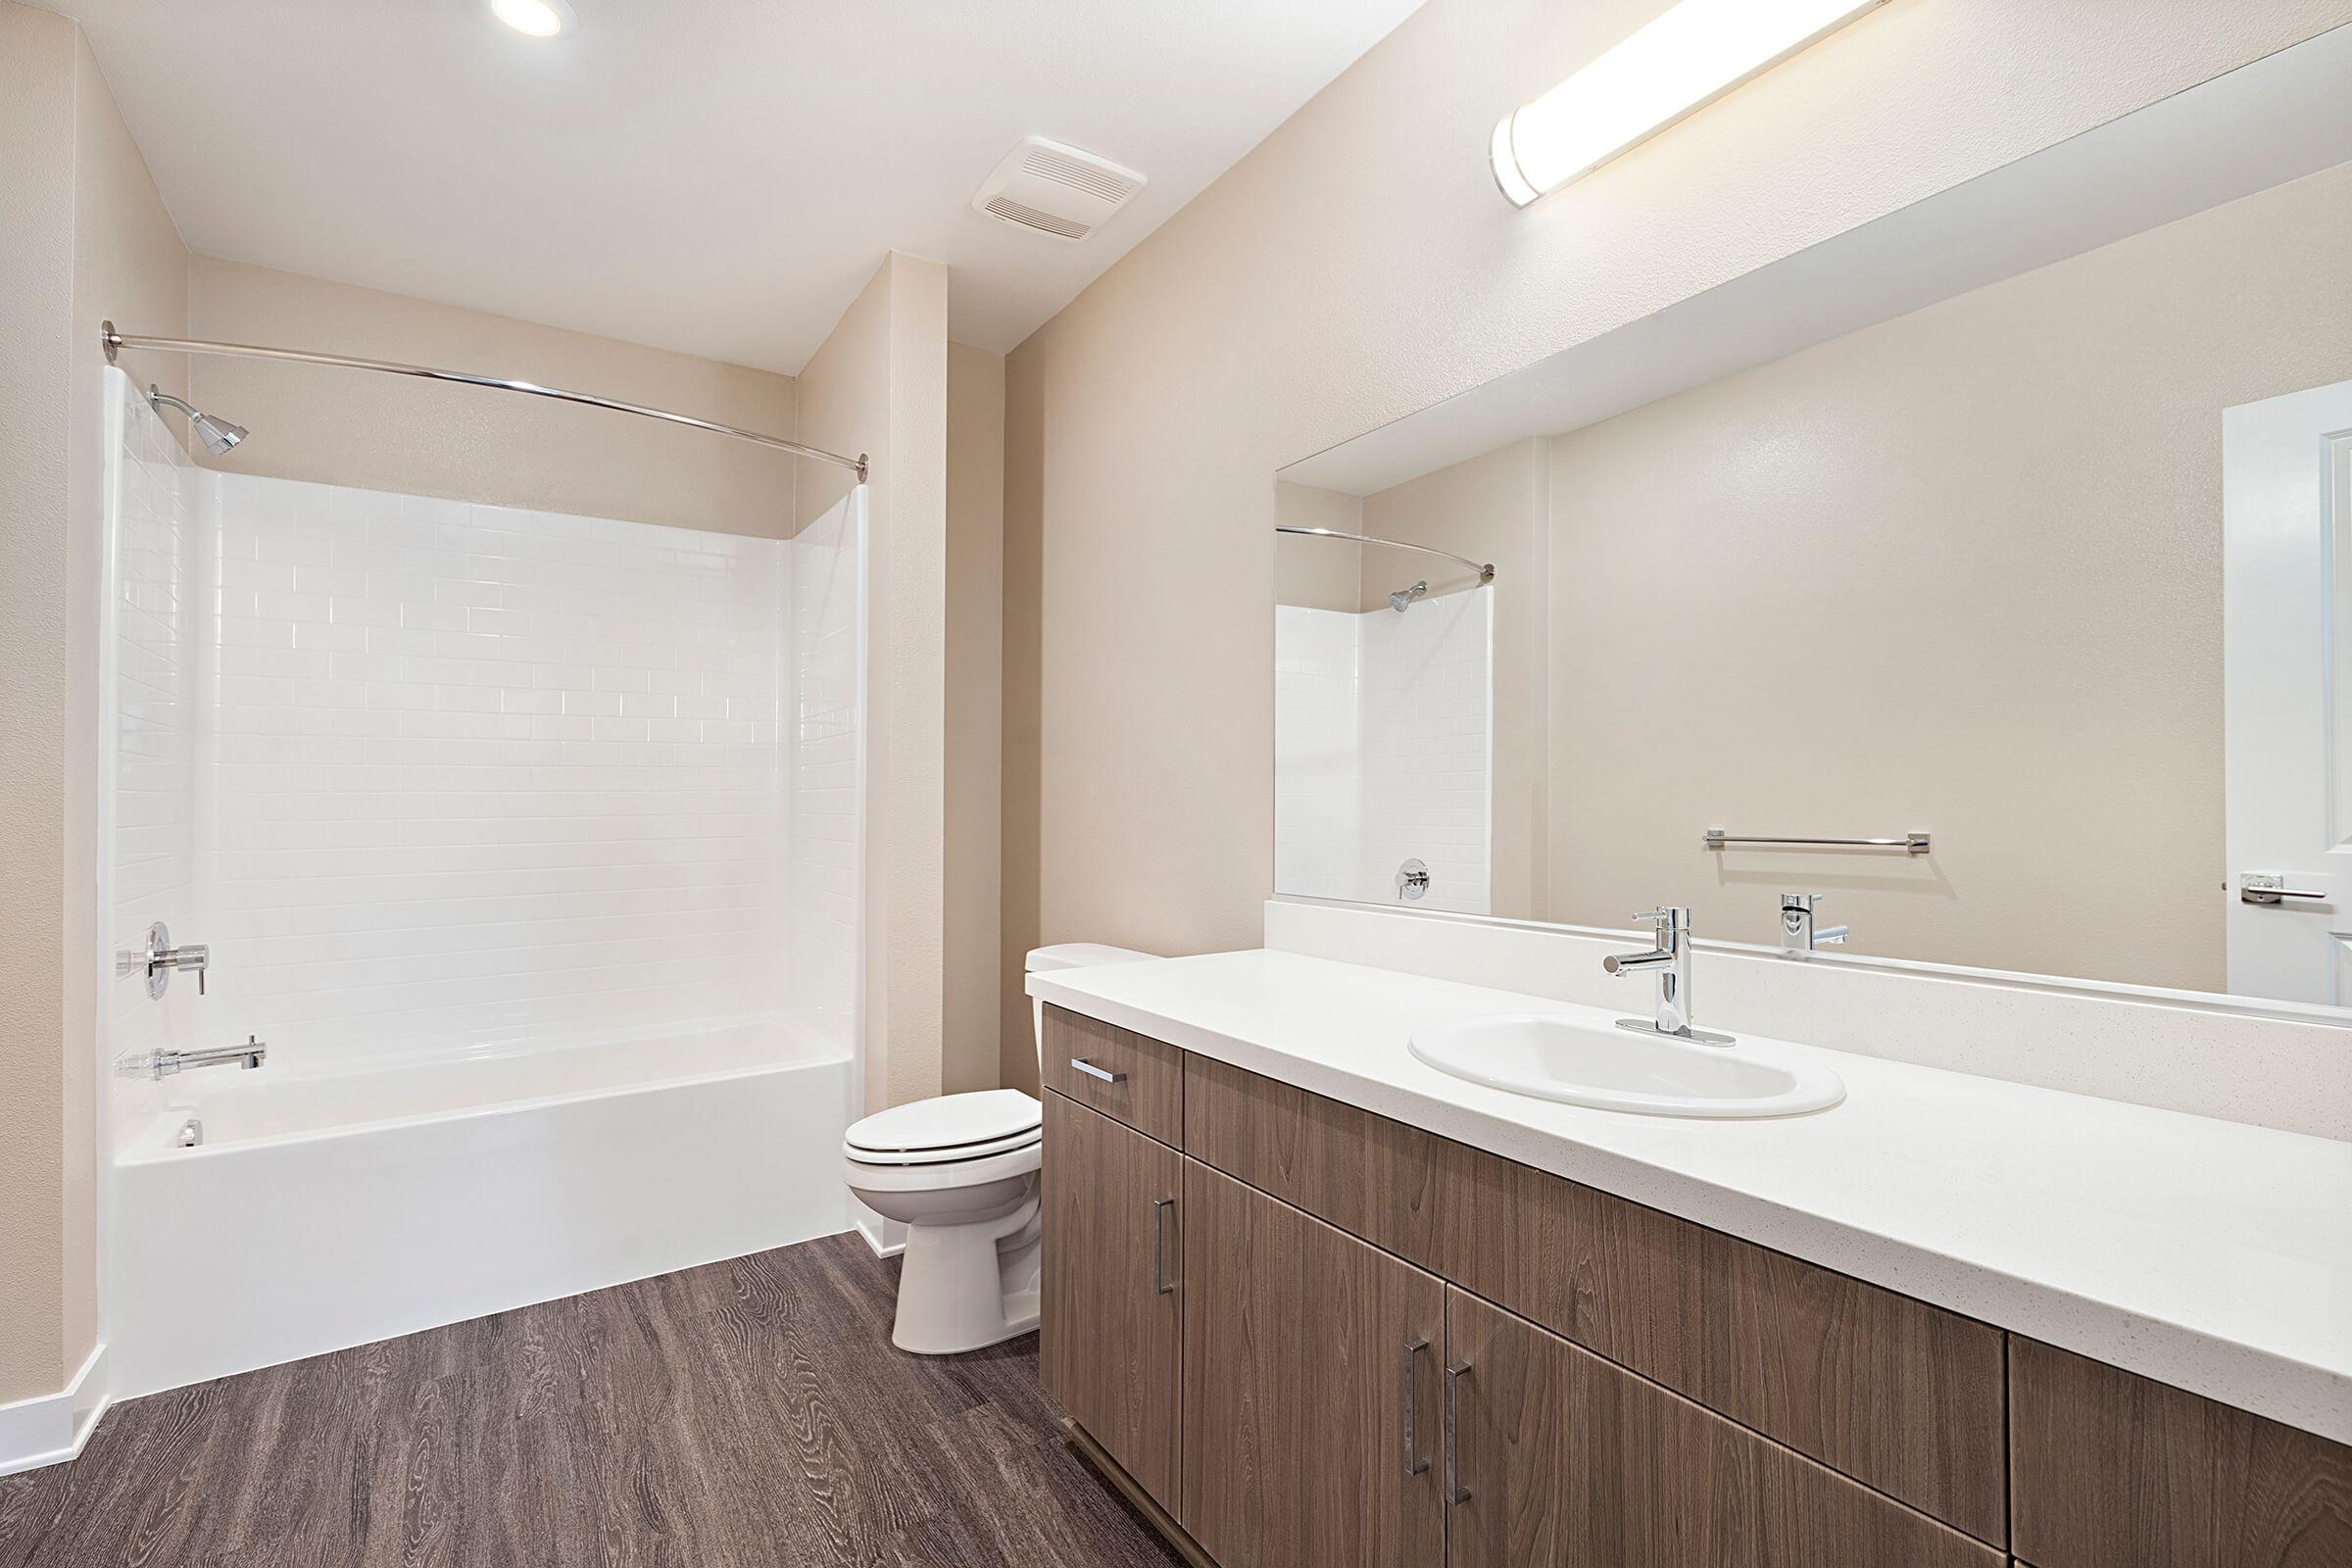 Bathroom with wooden cabinets